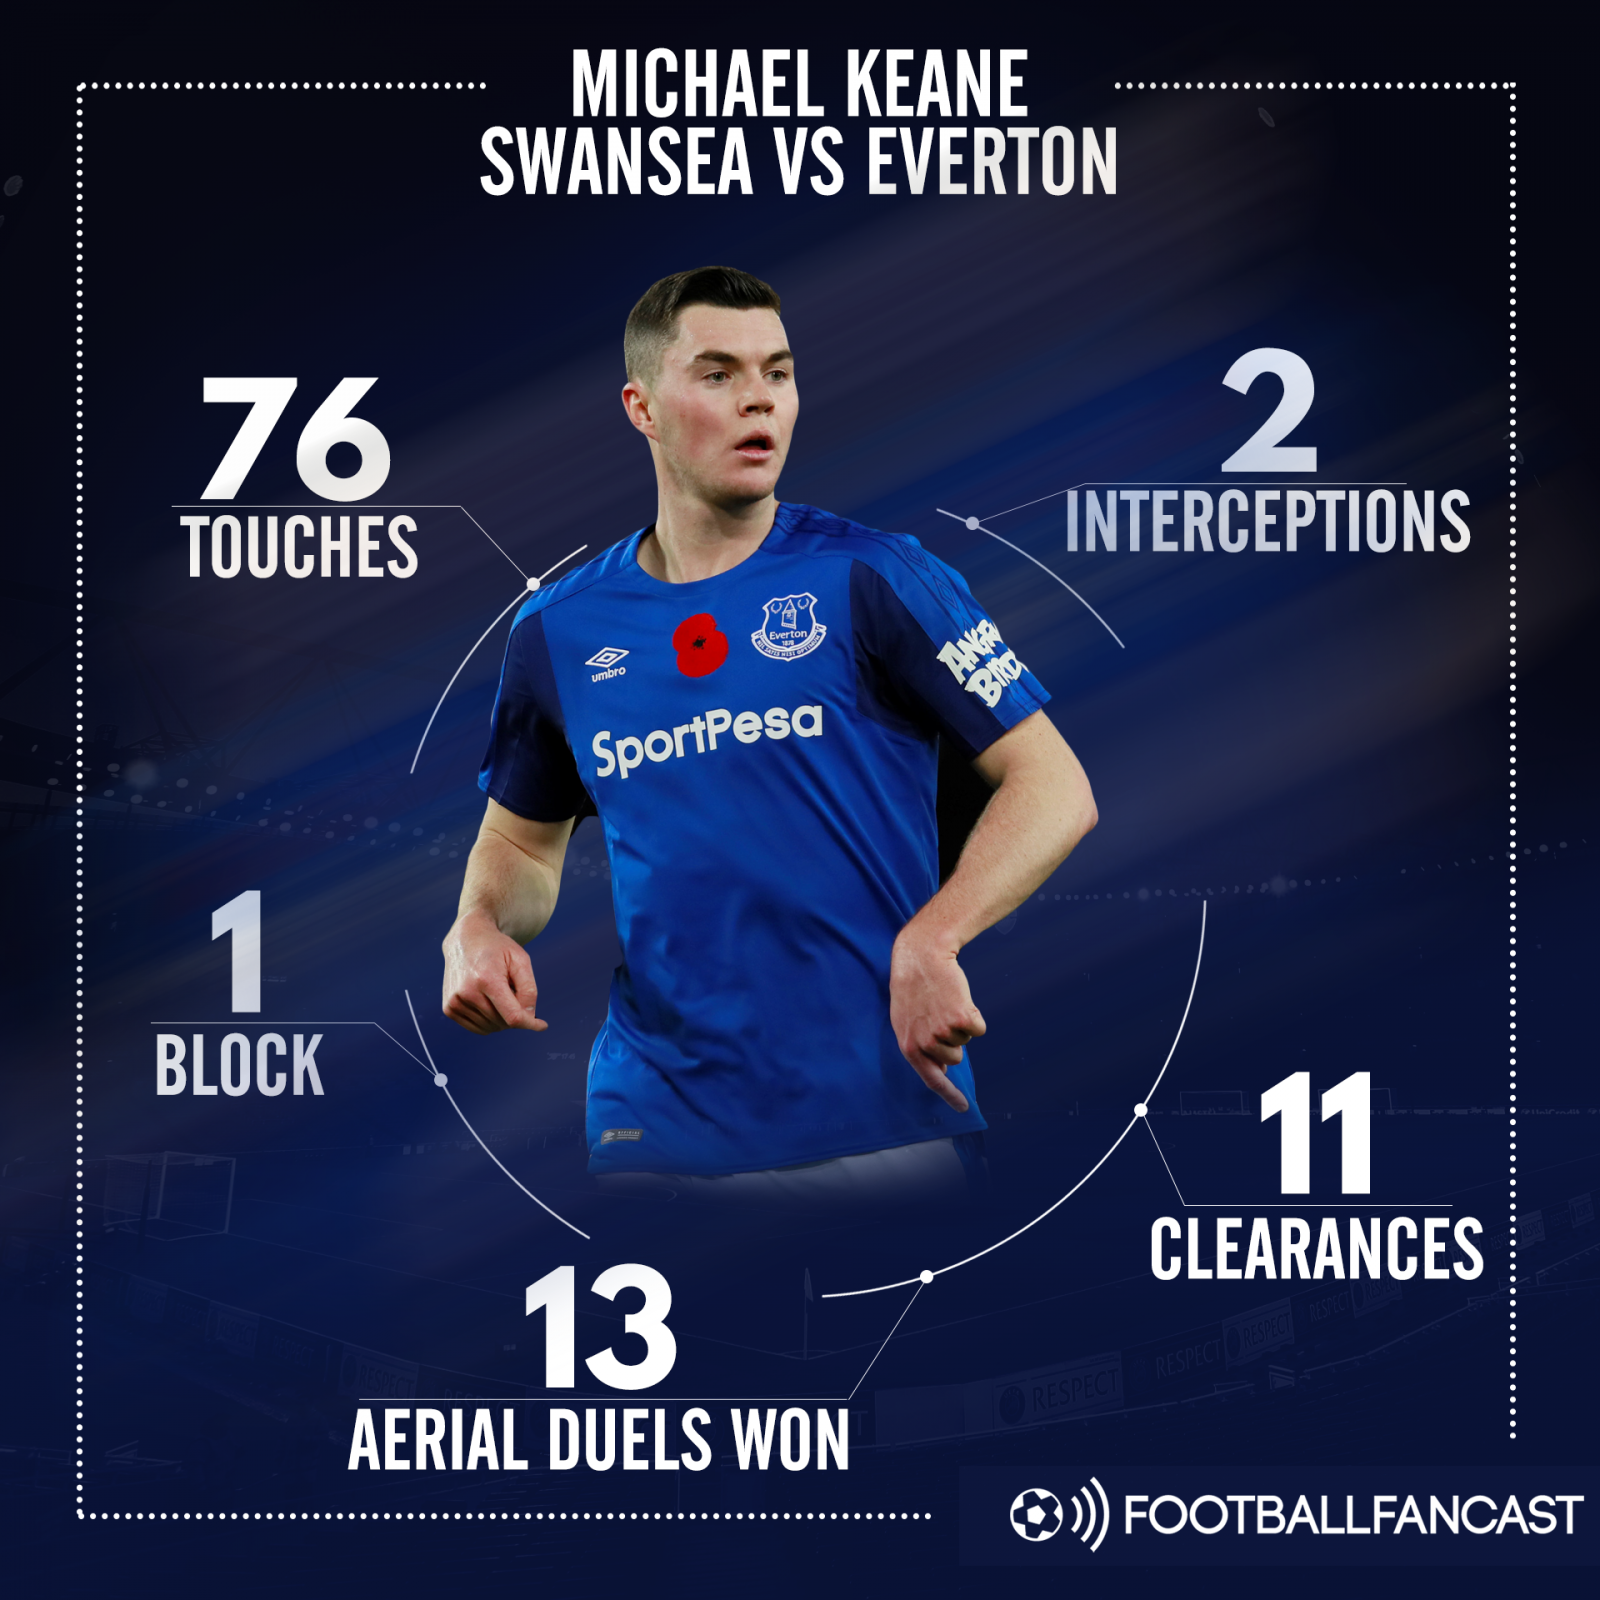 Michael Keane's stats from 1-1 draw with Swansea City